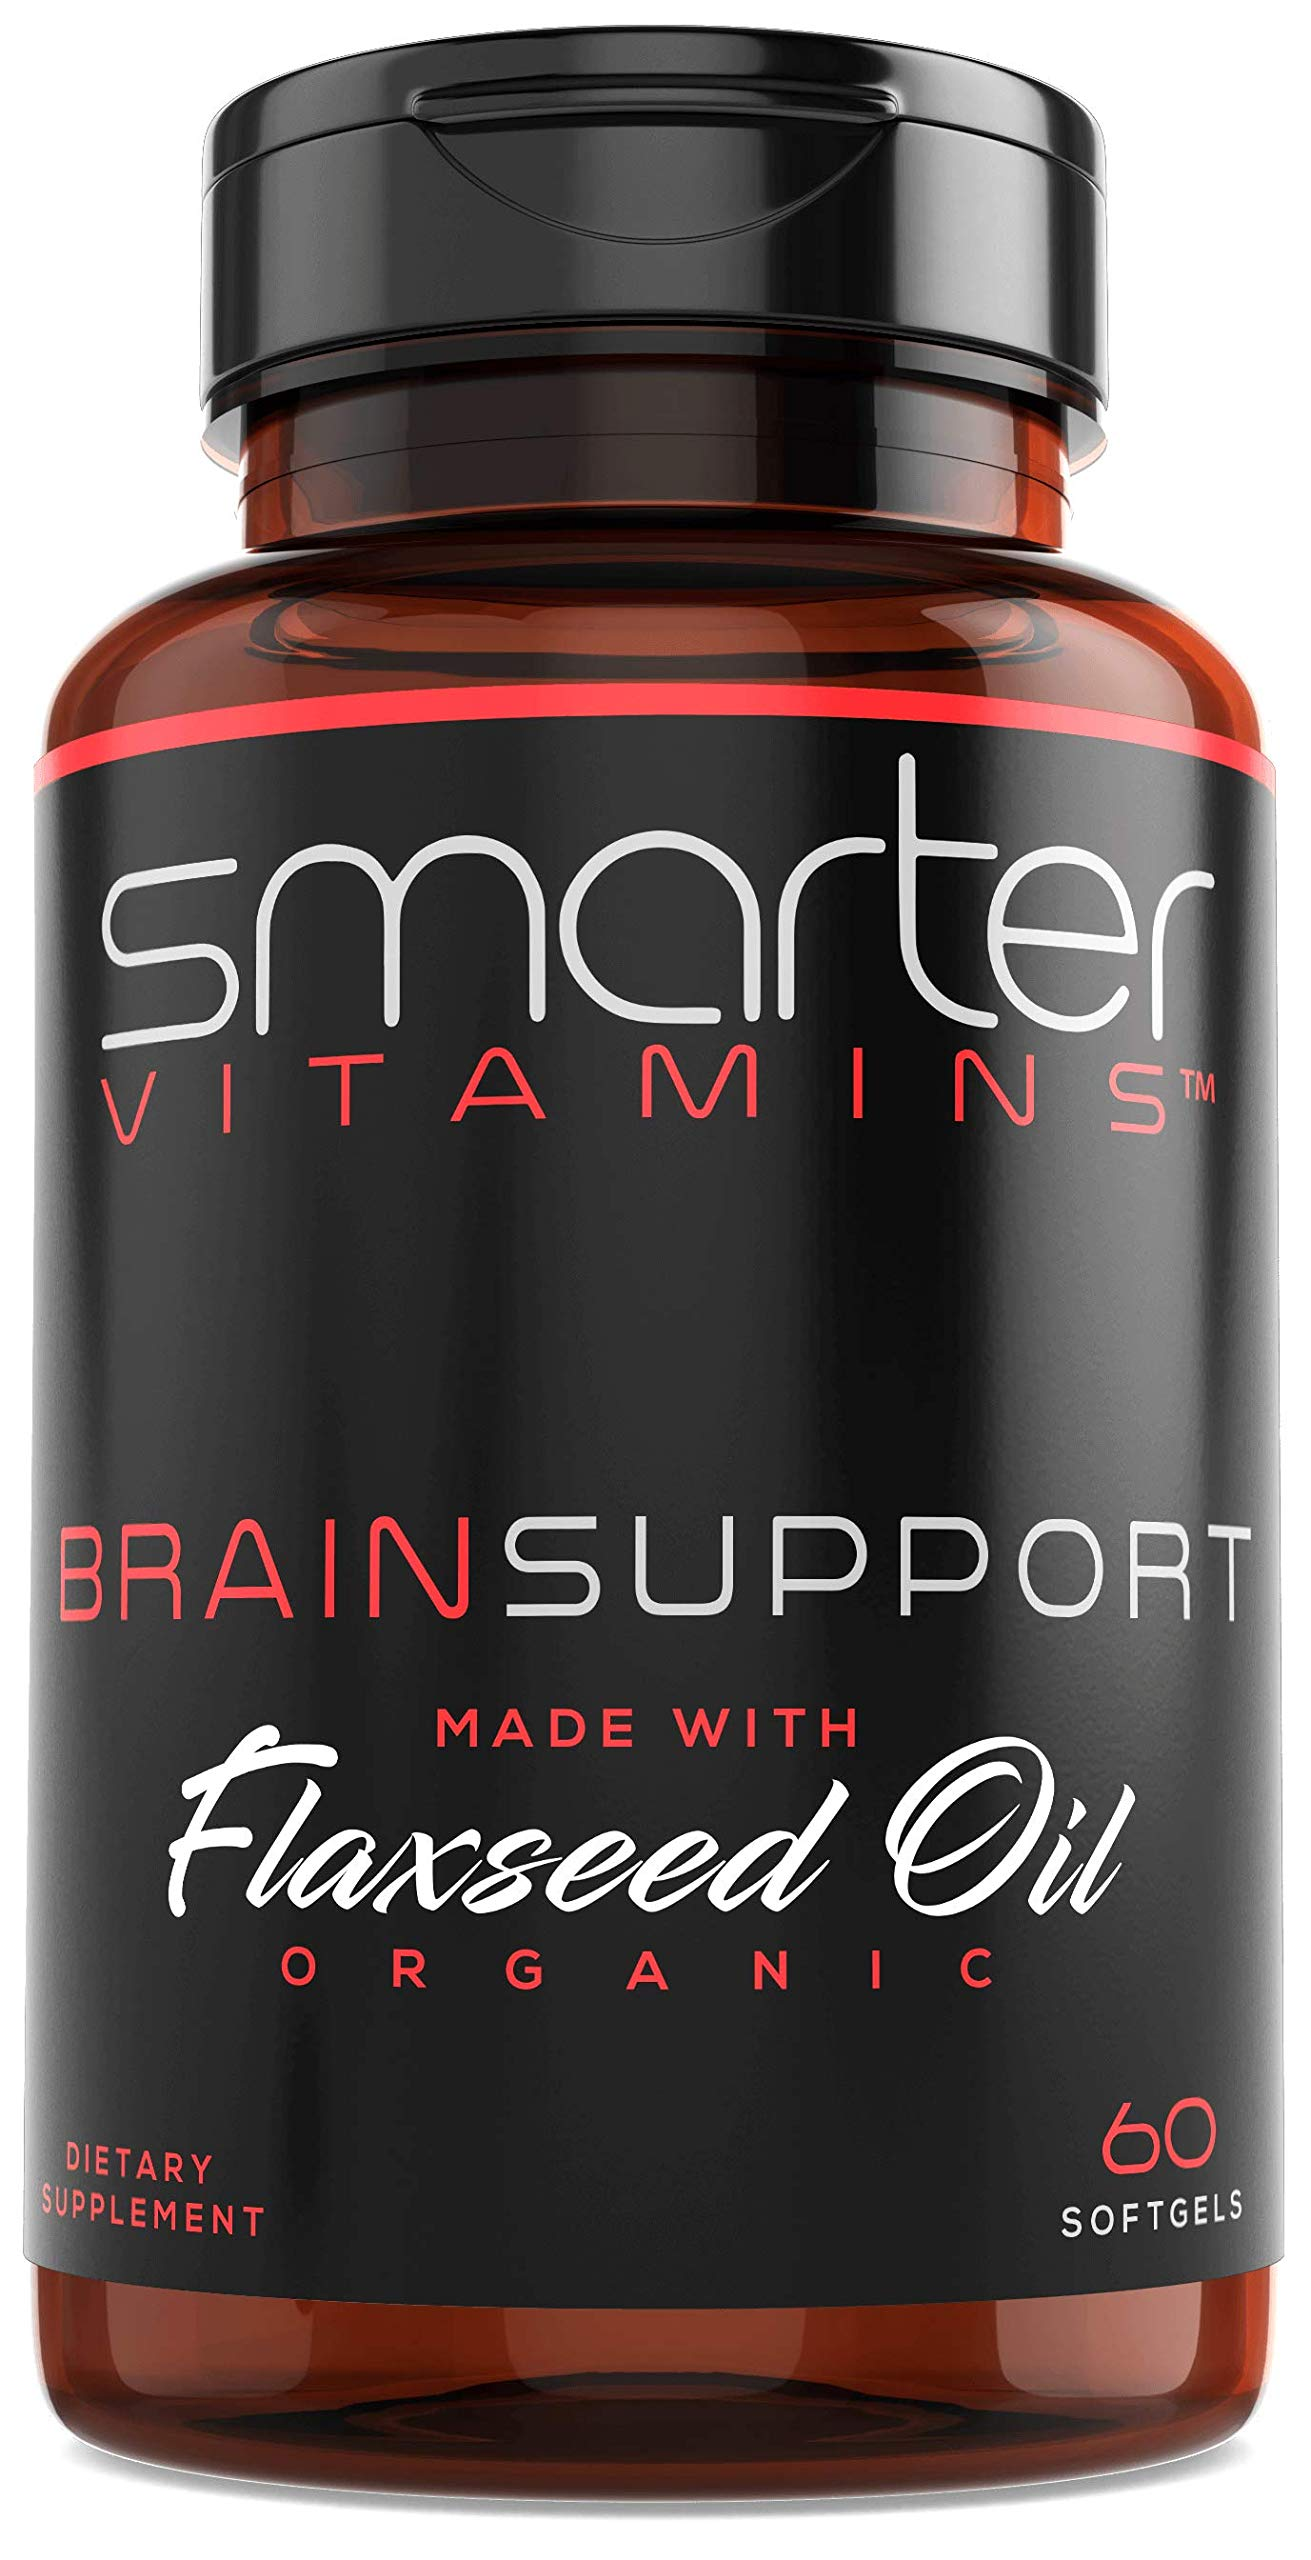 Brain Support Nootropic Supplement, Memory, Alertness, Brain Health, Brain Function, Made with Alpha-GPC, L-Tyrosine & Acetyl L-Carnitine ALCAR, Organic Flaxseed Oil for ALA + DHA Brain Omegas